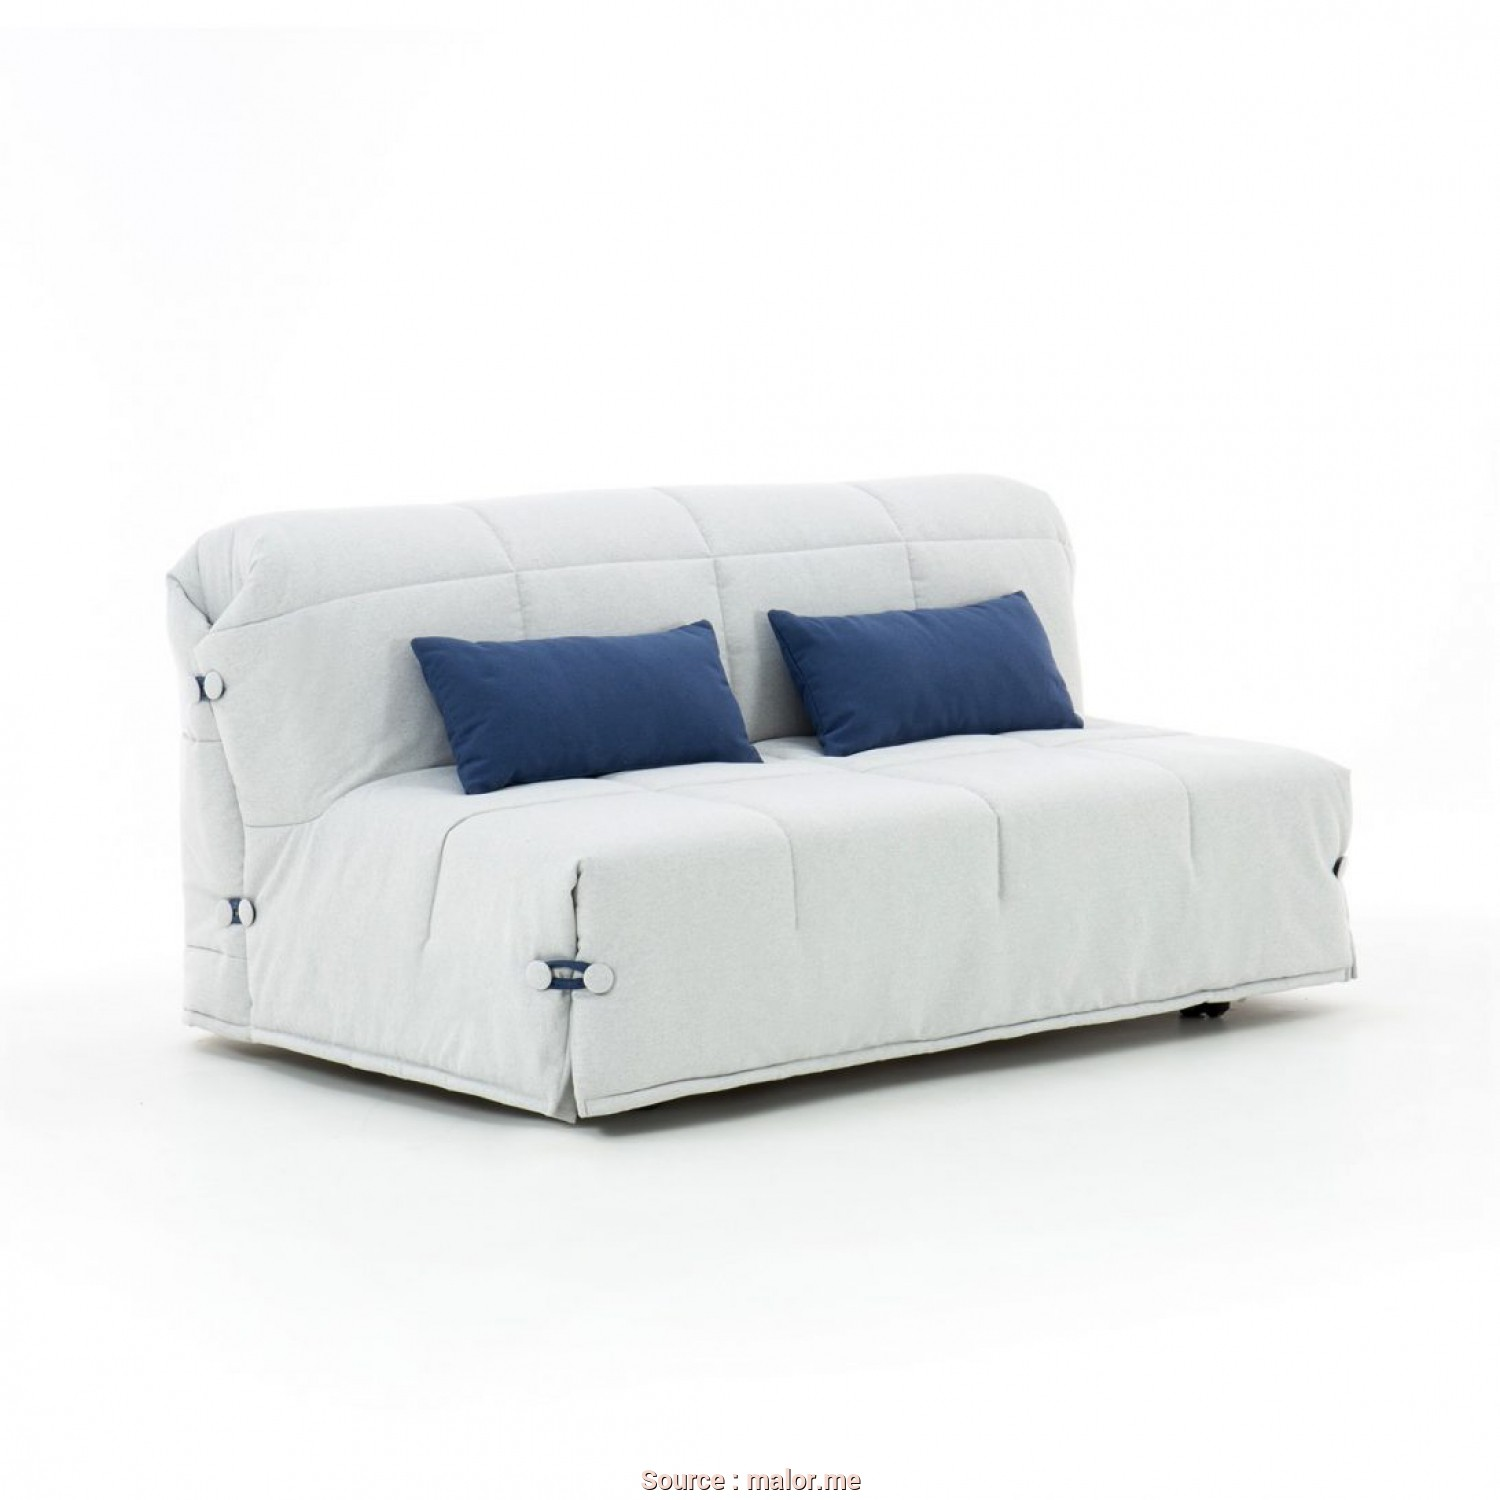 Divano Letto Ikea Exarby, Bello ... Large Size Of Divani Ikea Opinioni Divano Divano Letto 3 Posti Ikea Stunning Ideas Of Ikea